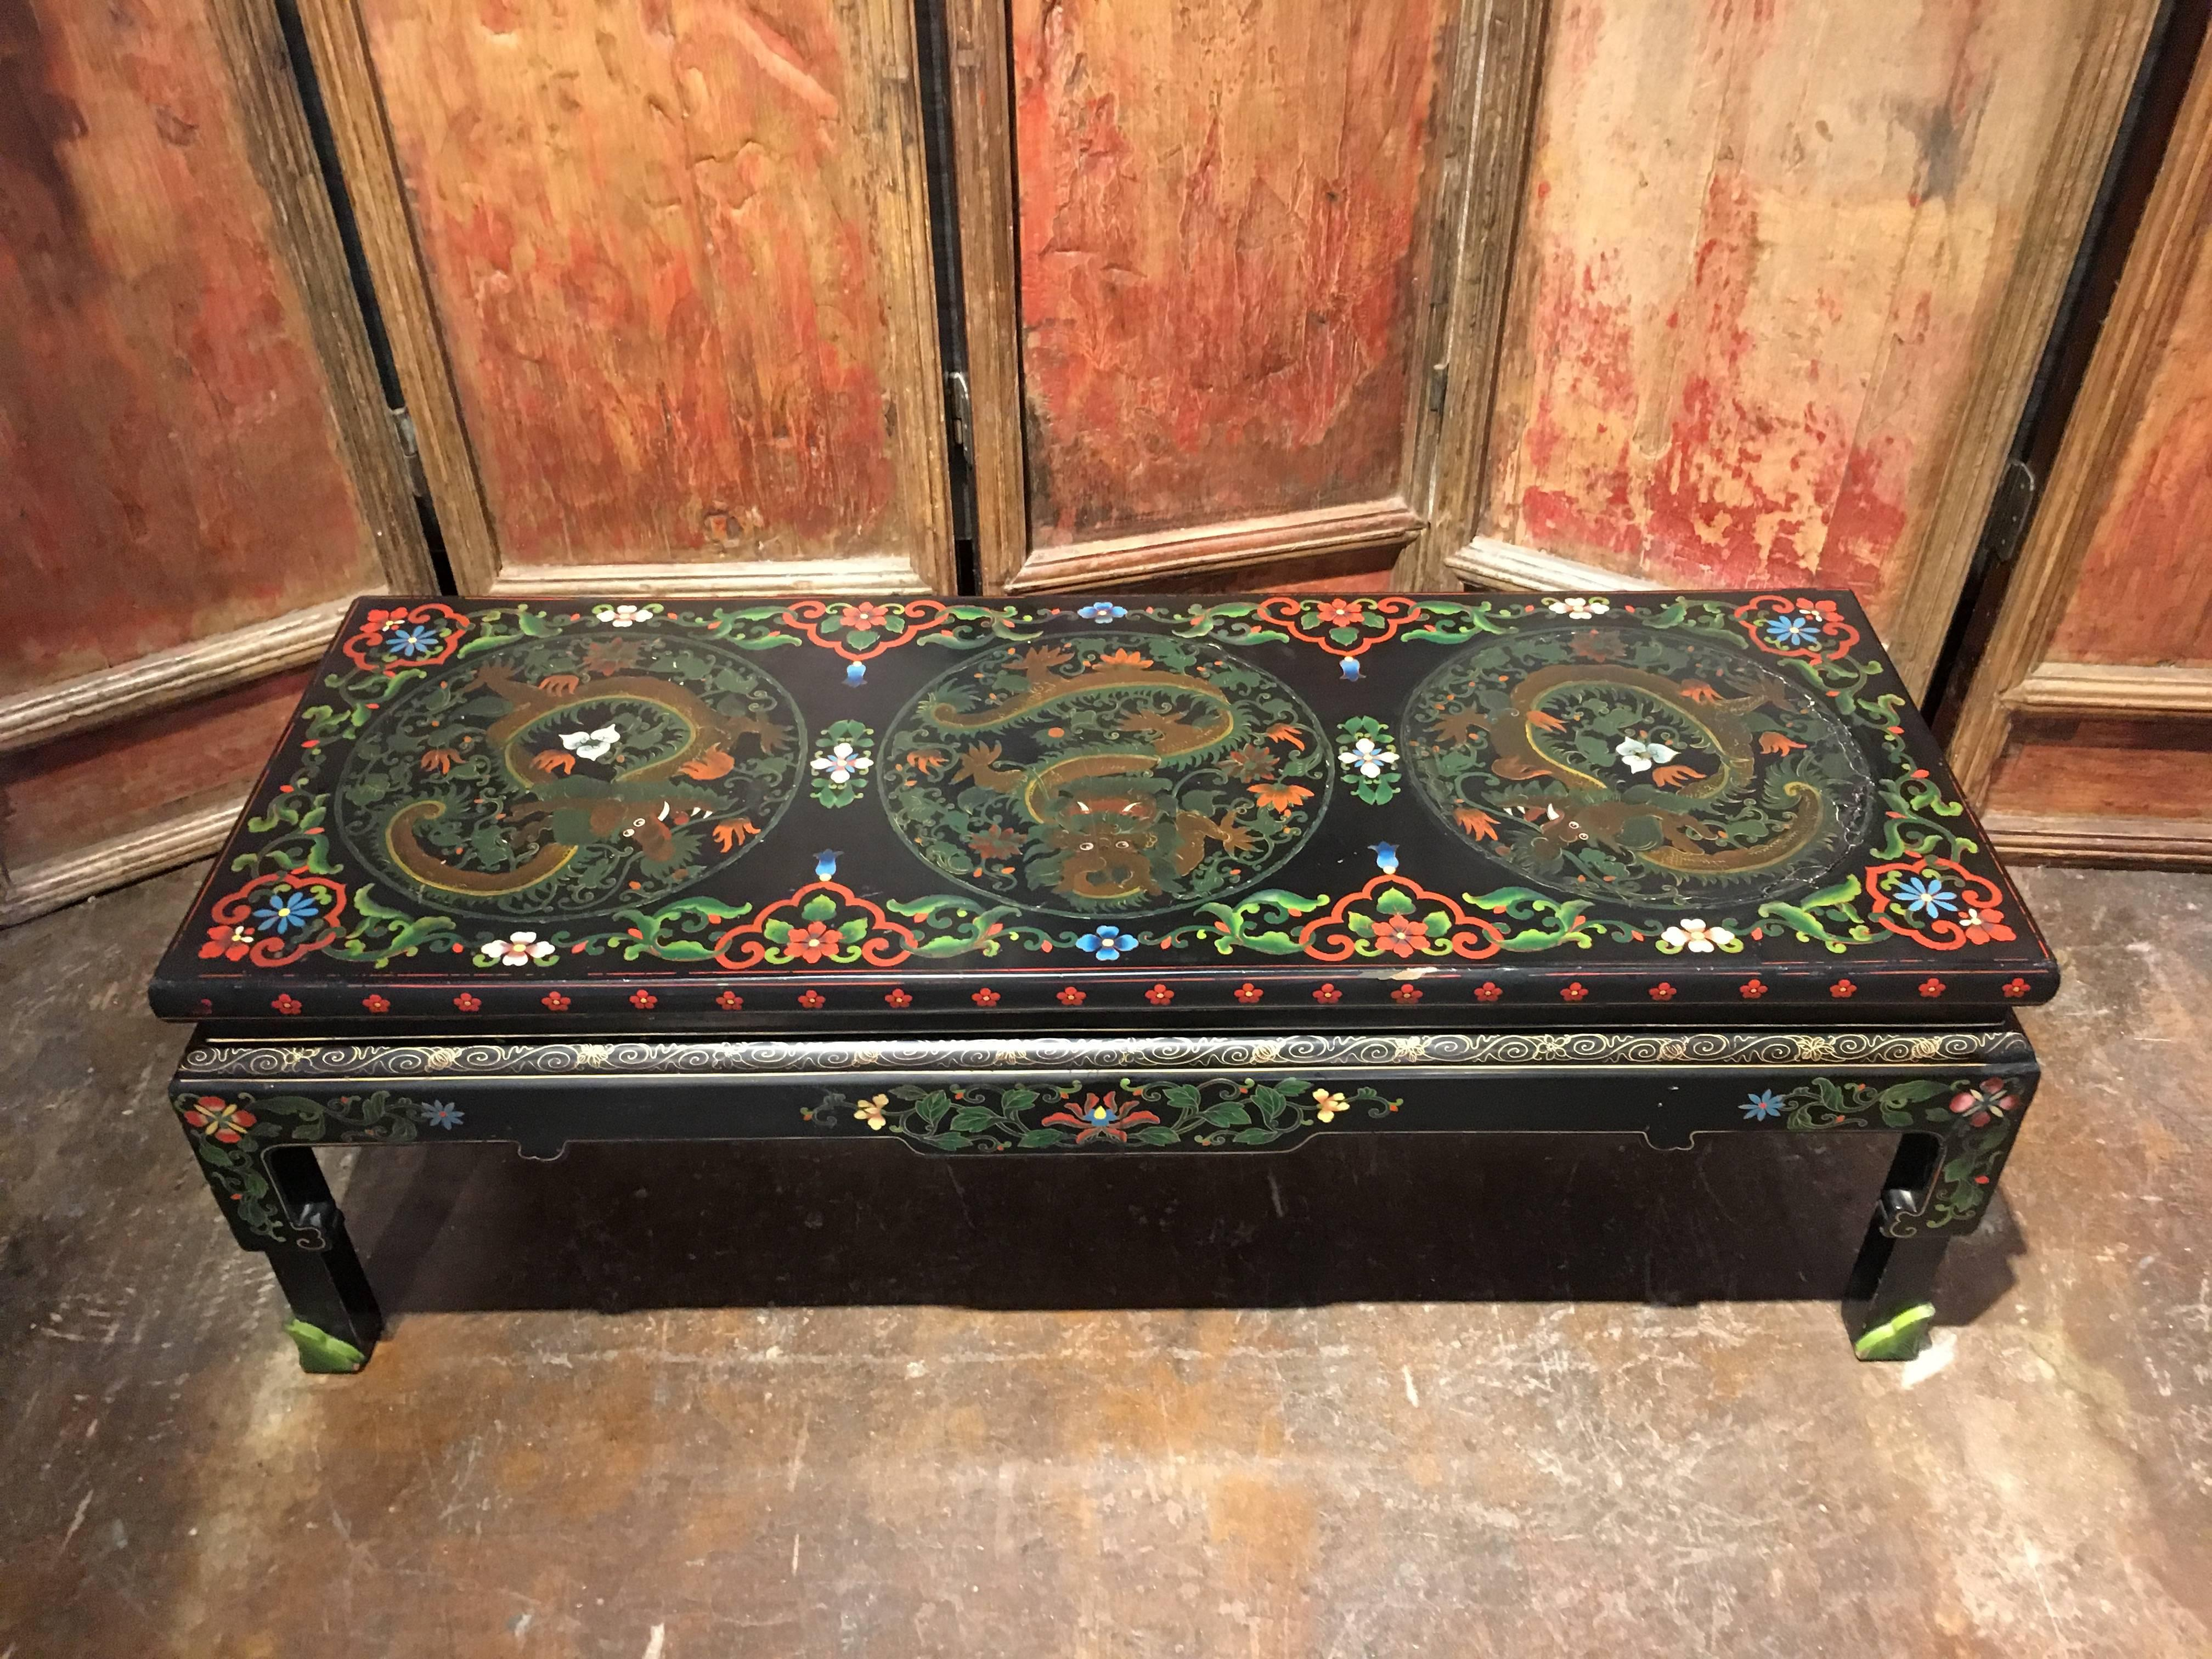 1950s Chinese Black Lacquer Painted Dragon Coffee Table Or Bench In  Distressed Condition For Sale In